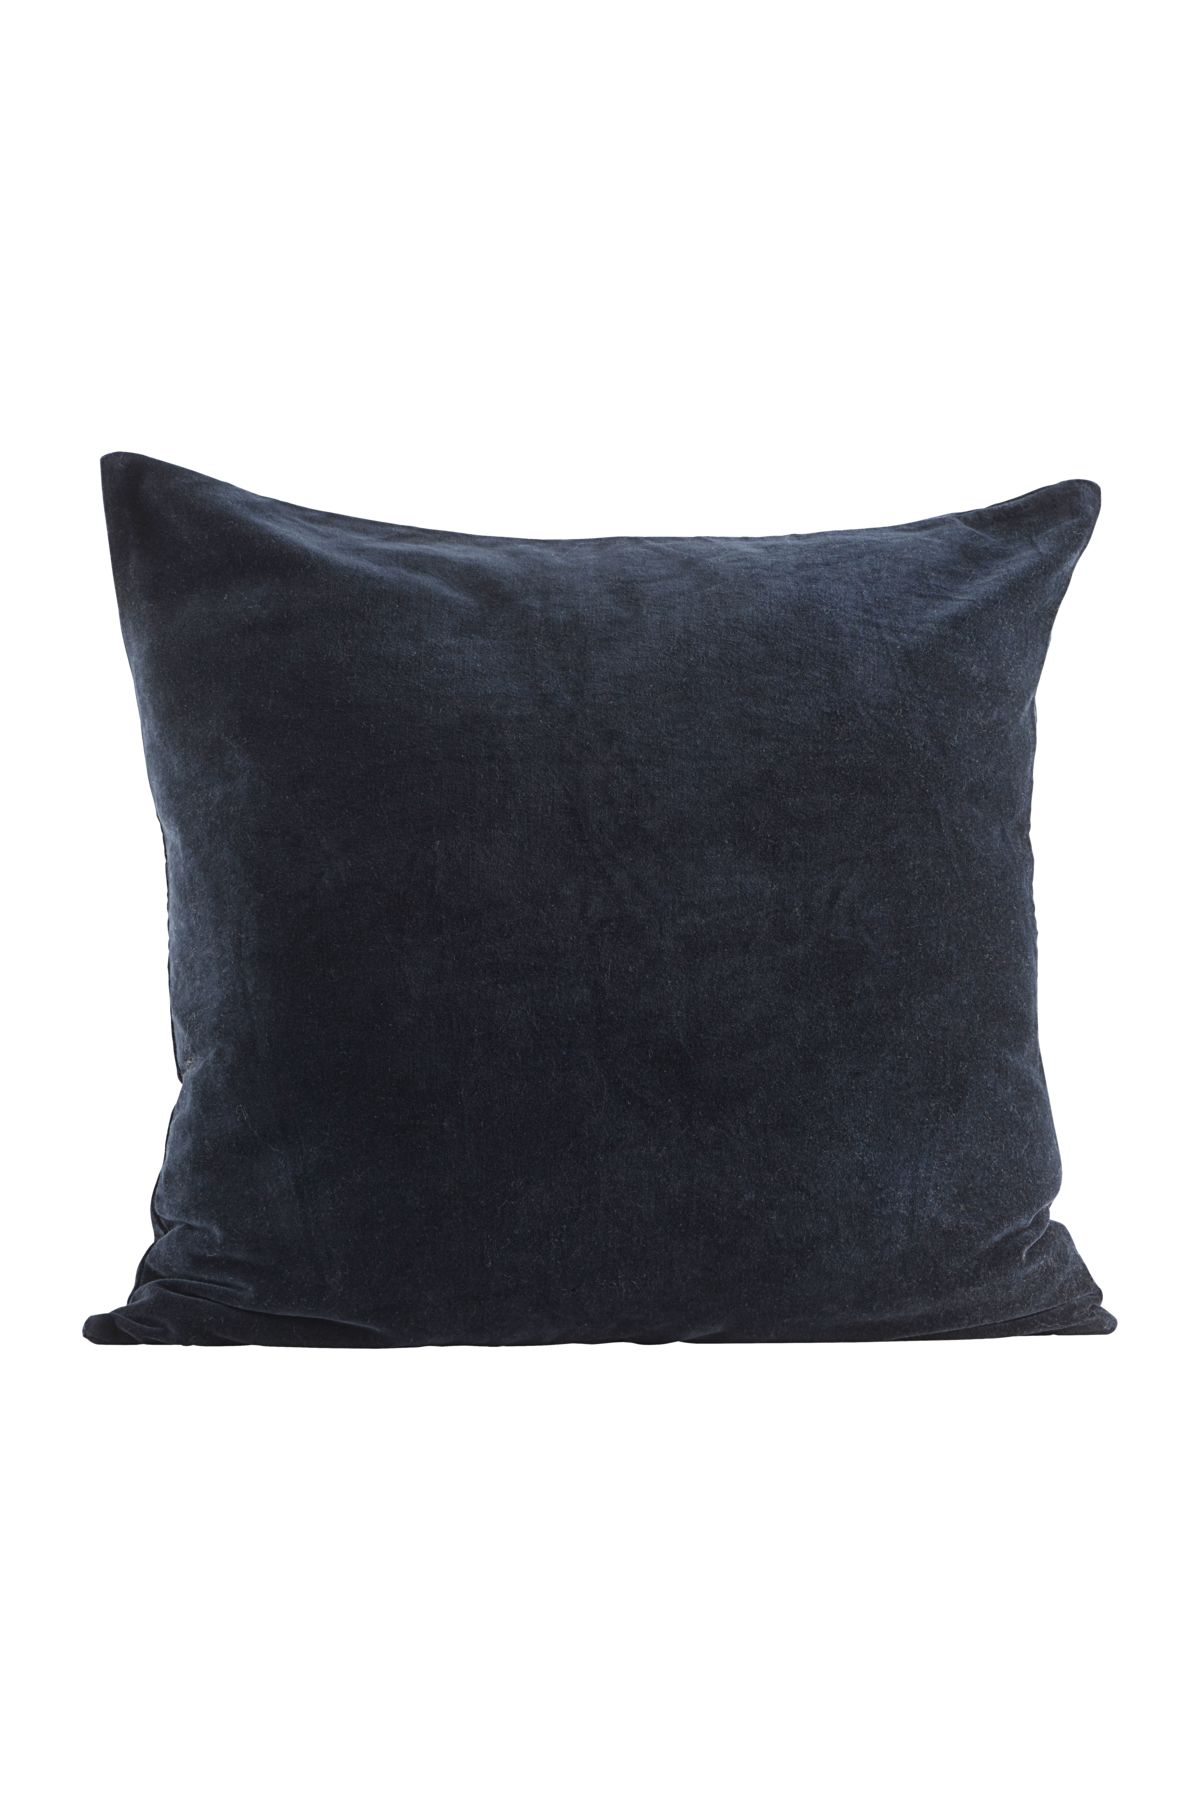 House Doctor - Velv Pillowcases - Blue/Petrol (AB1319/203531319)